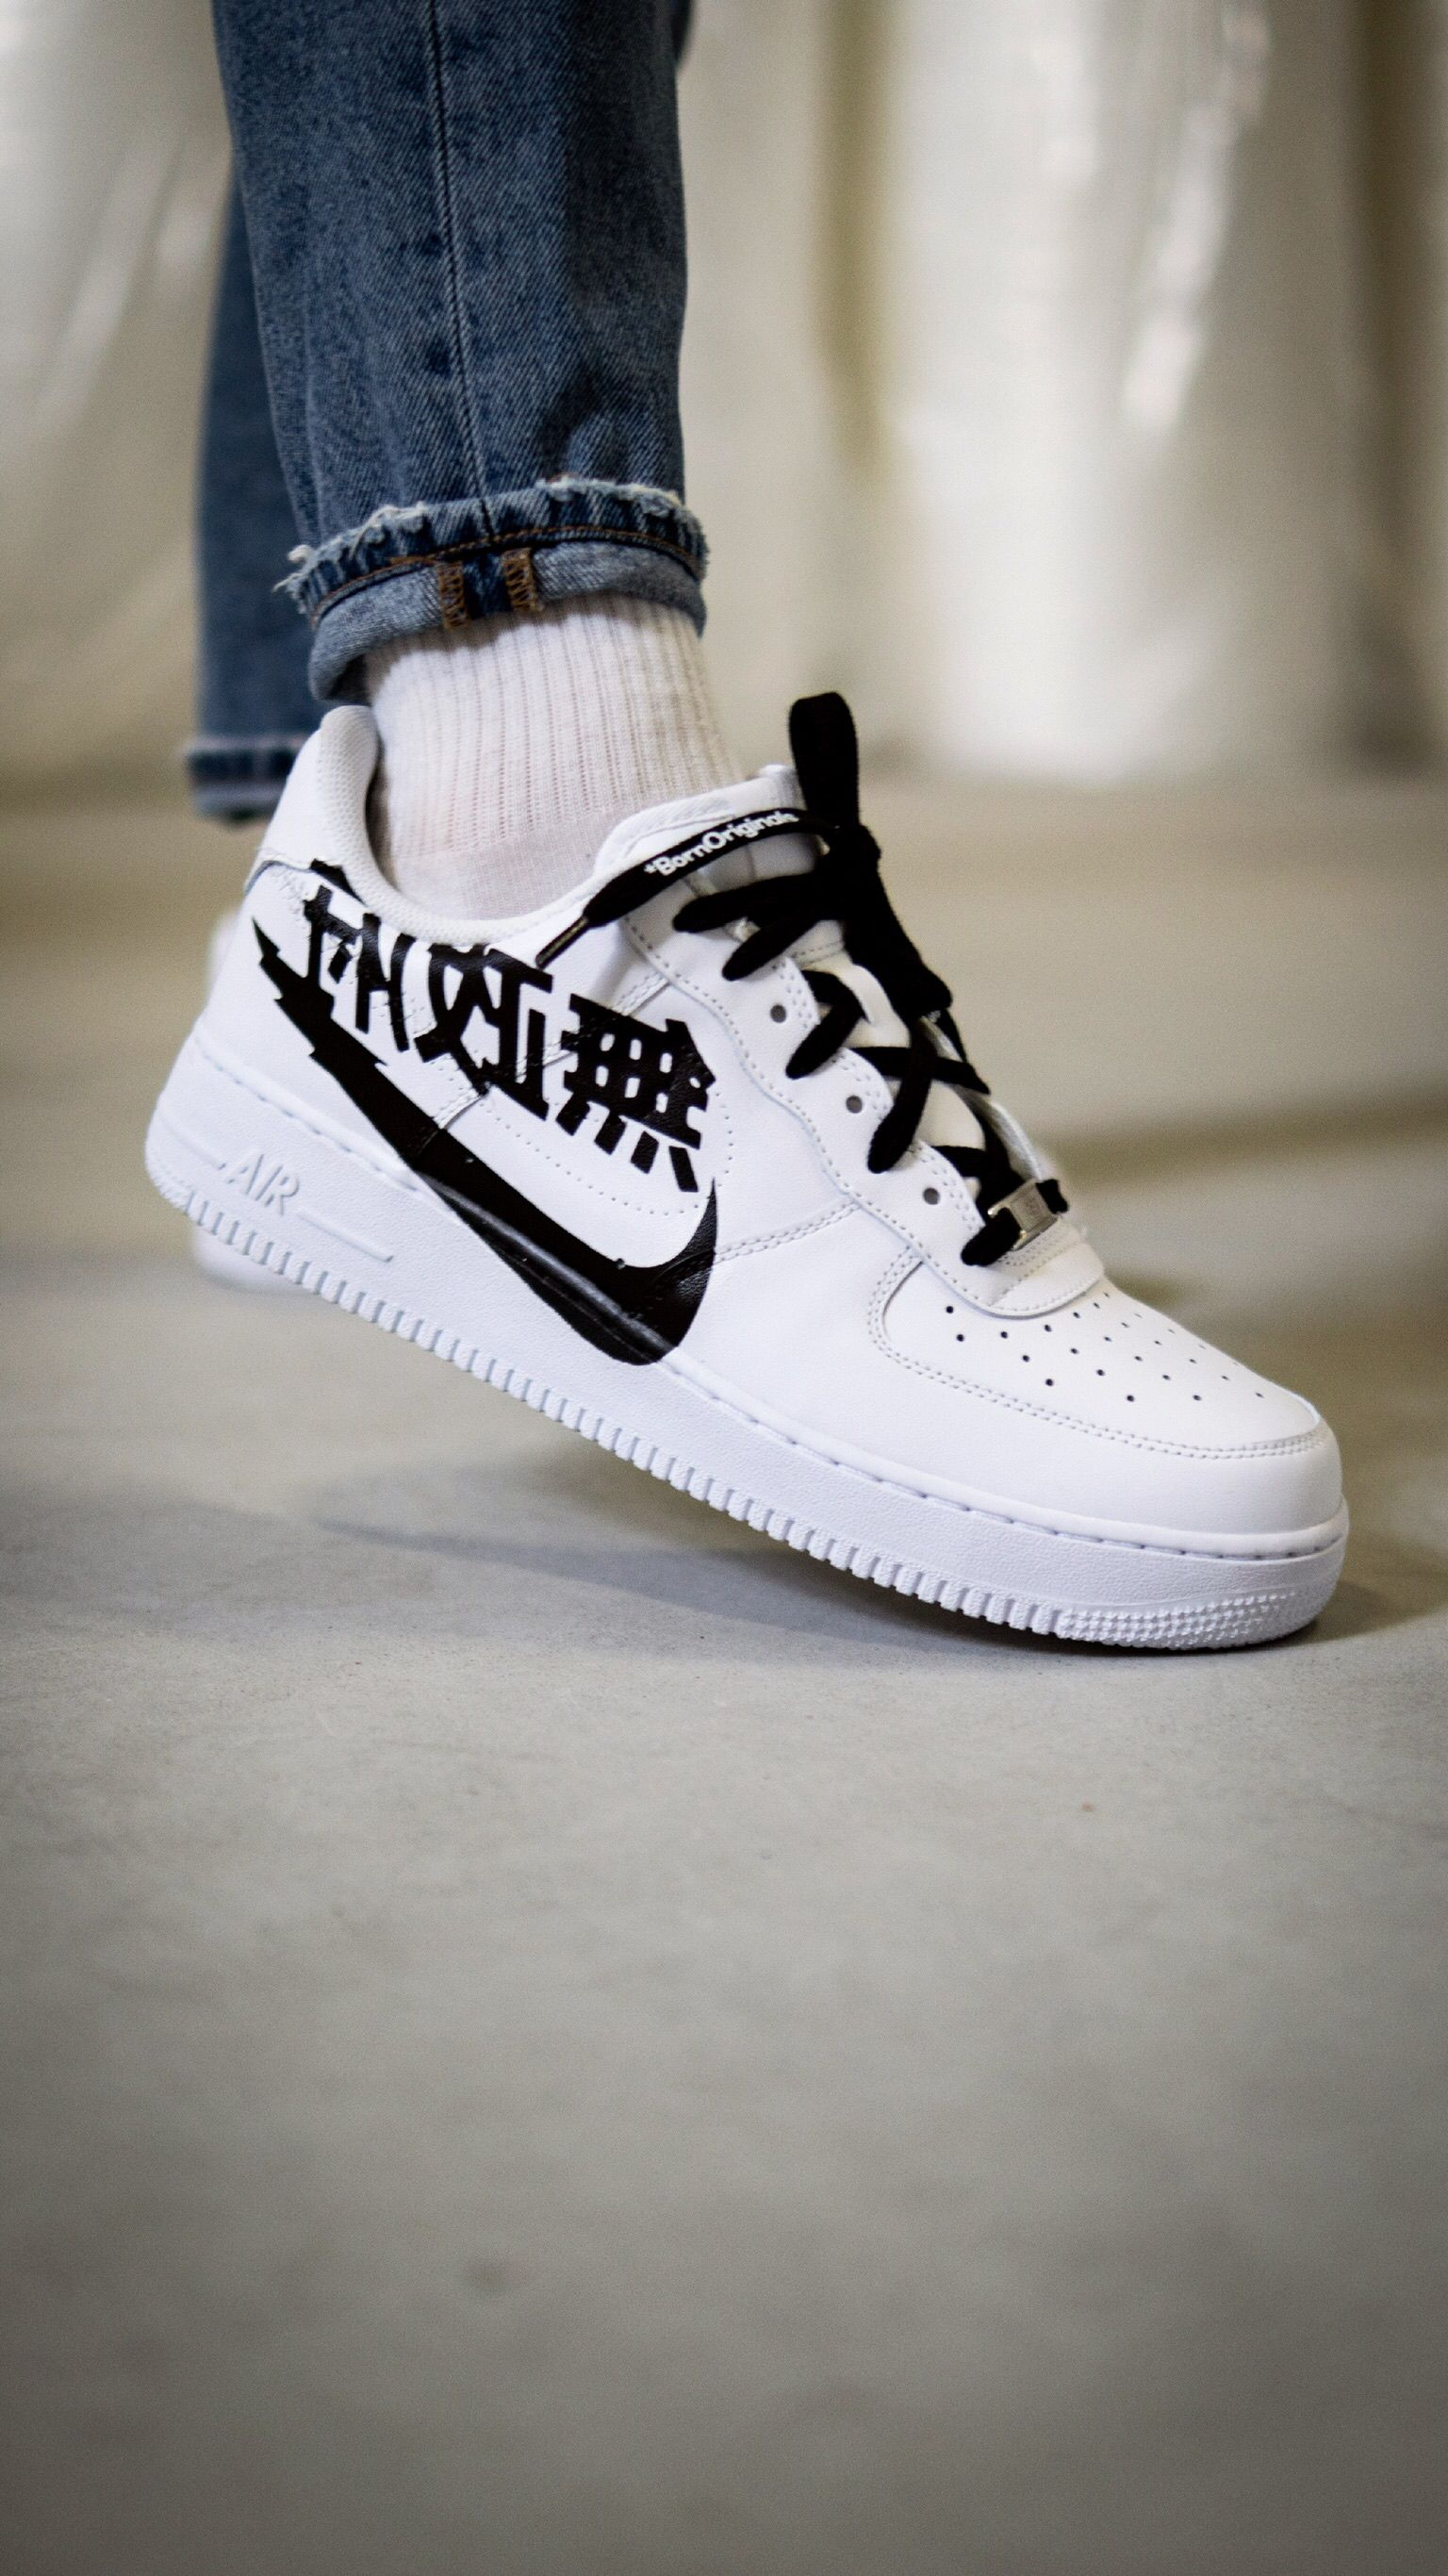 AF1 'Japanese Swoosh' | shoes in 2019 | Sneakers, Nike